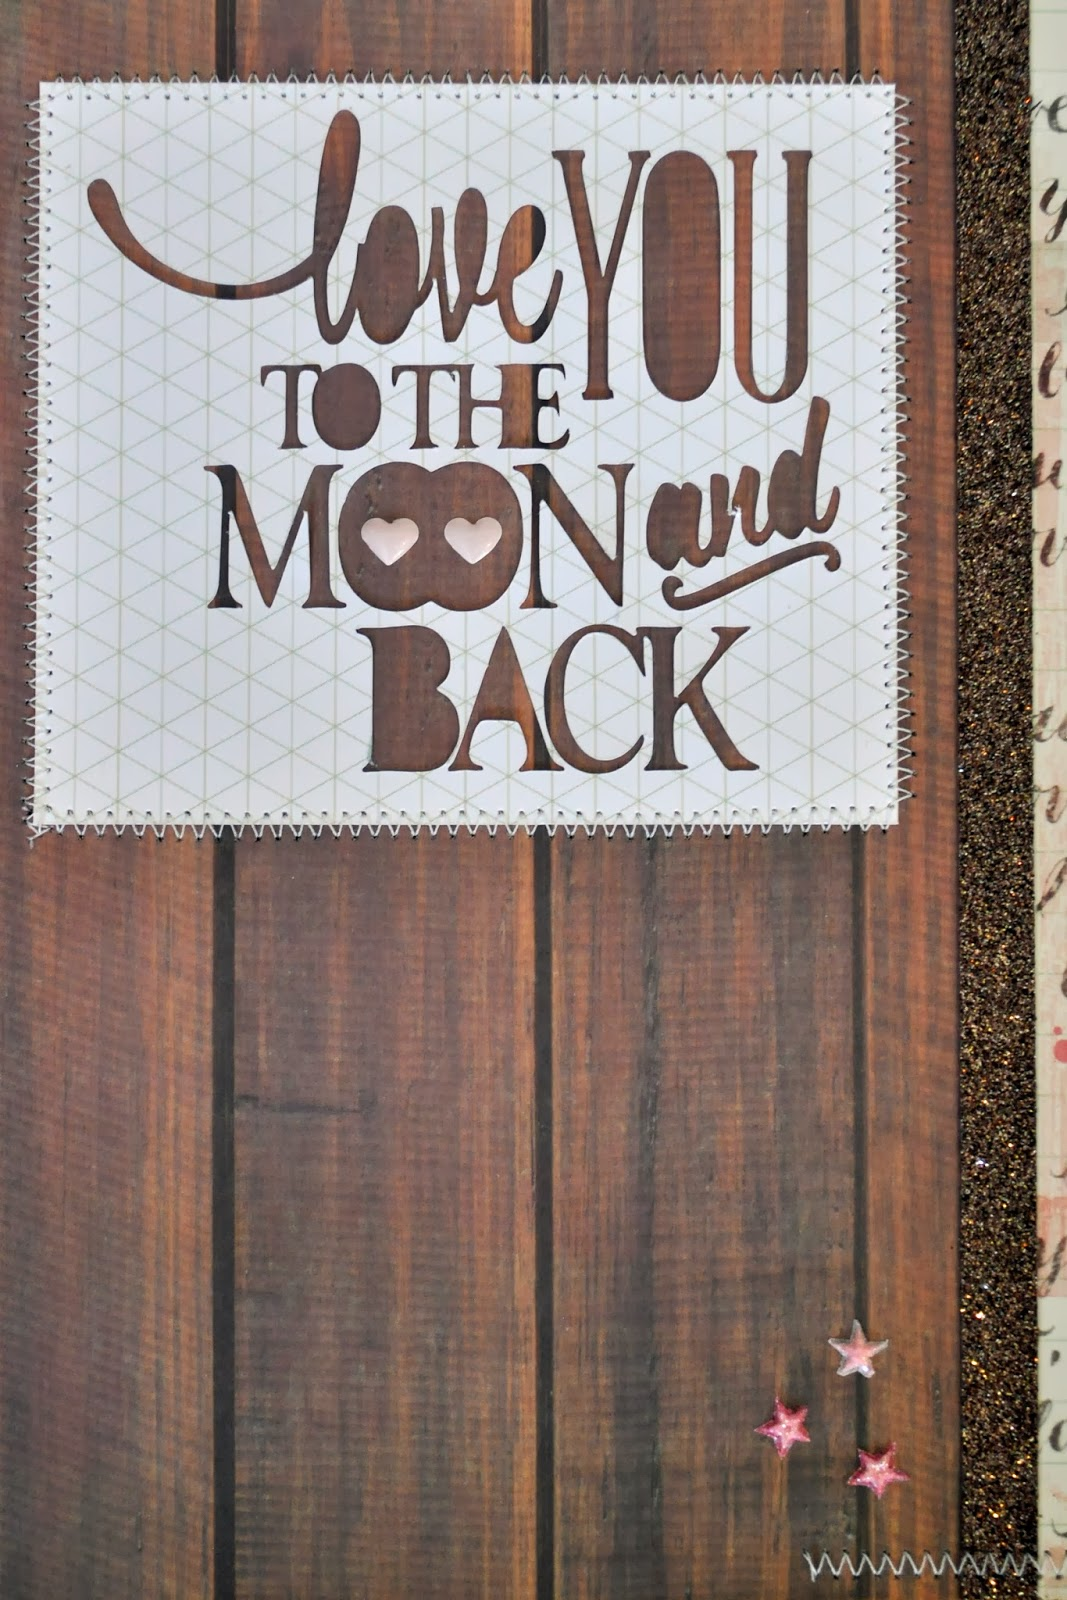 love you to the moon and back scrapbook page 12 x12 inspiration layout silouhette cut file title phrase baby photos brown wood panel i love you cream ivory pink glitter ribbon stars pink hearts